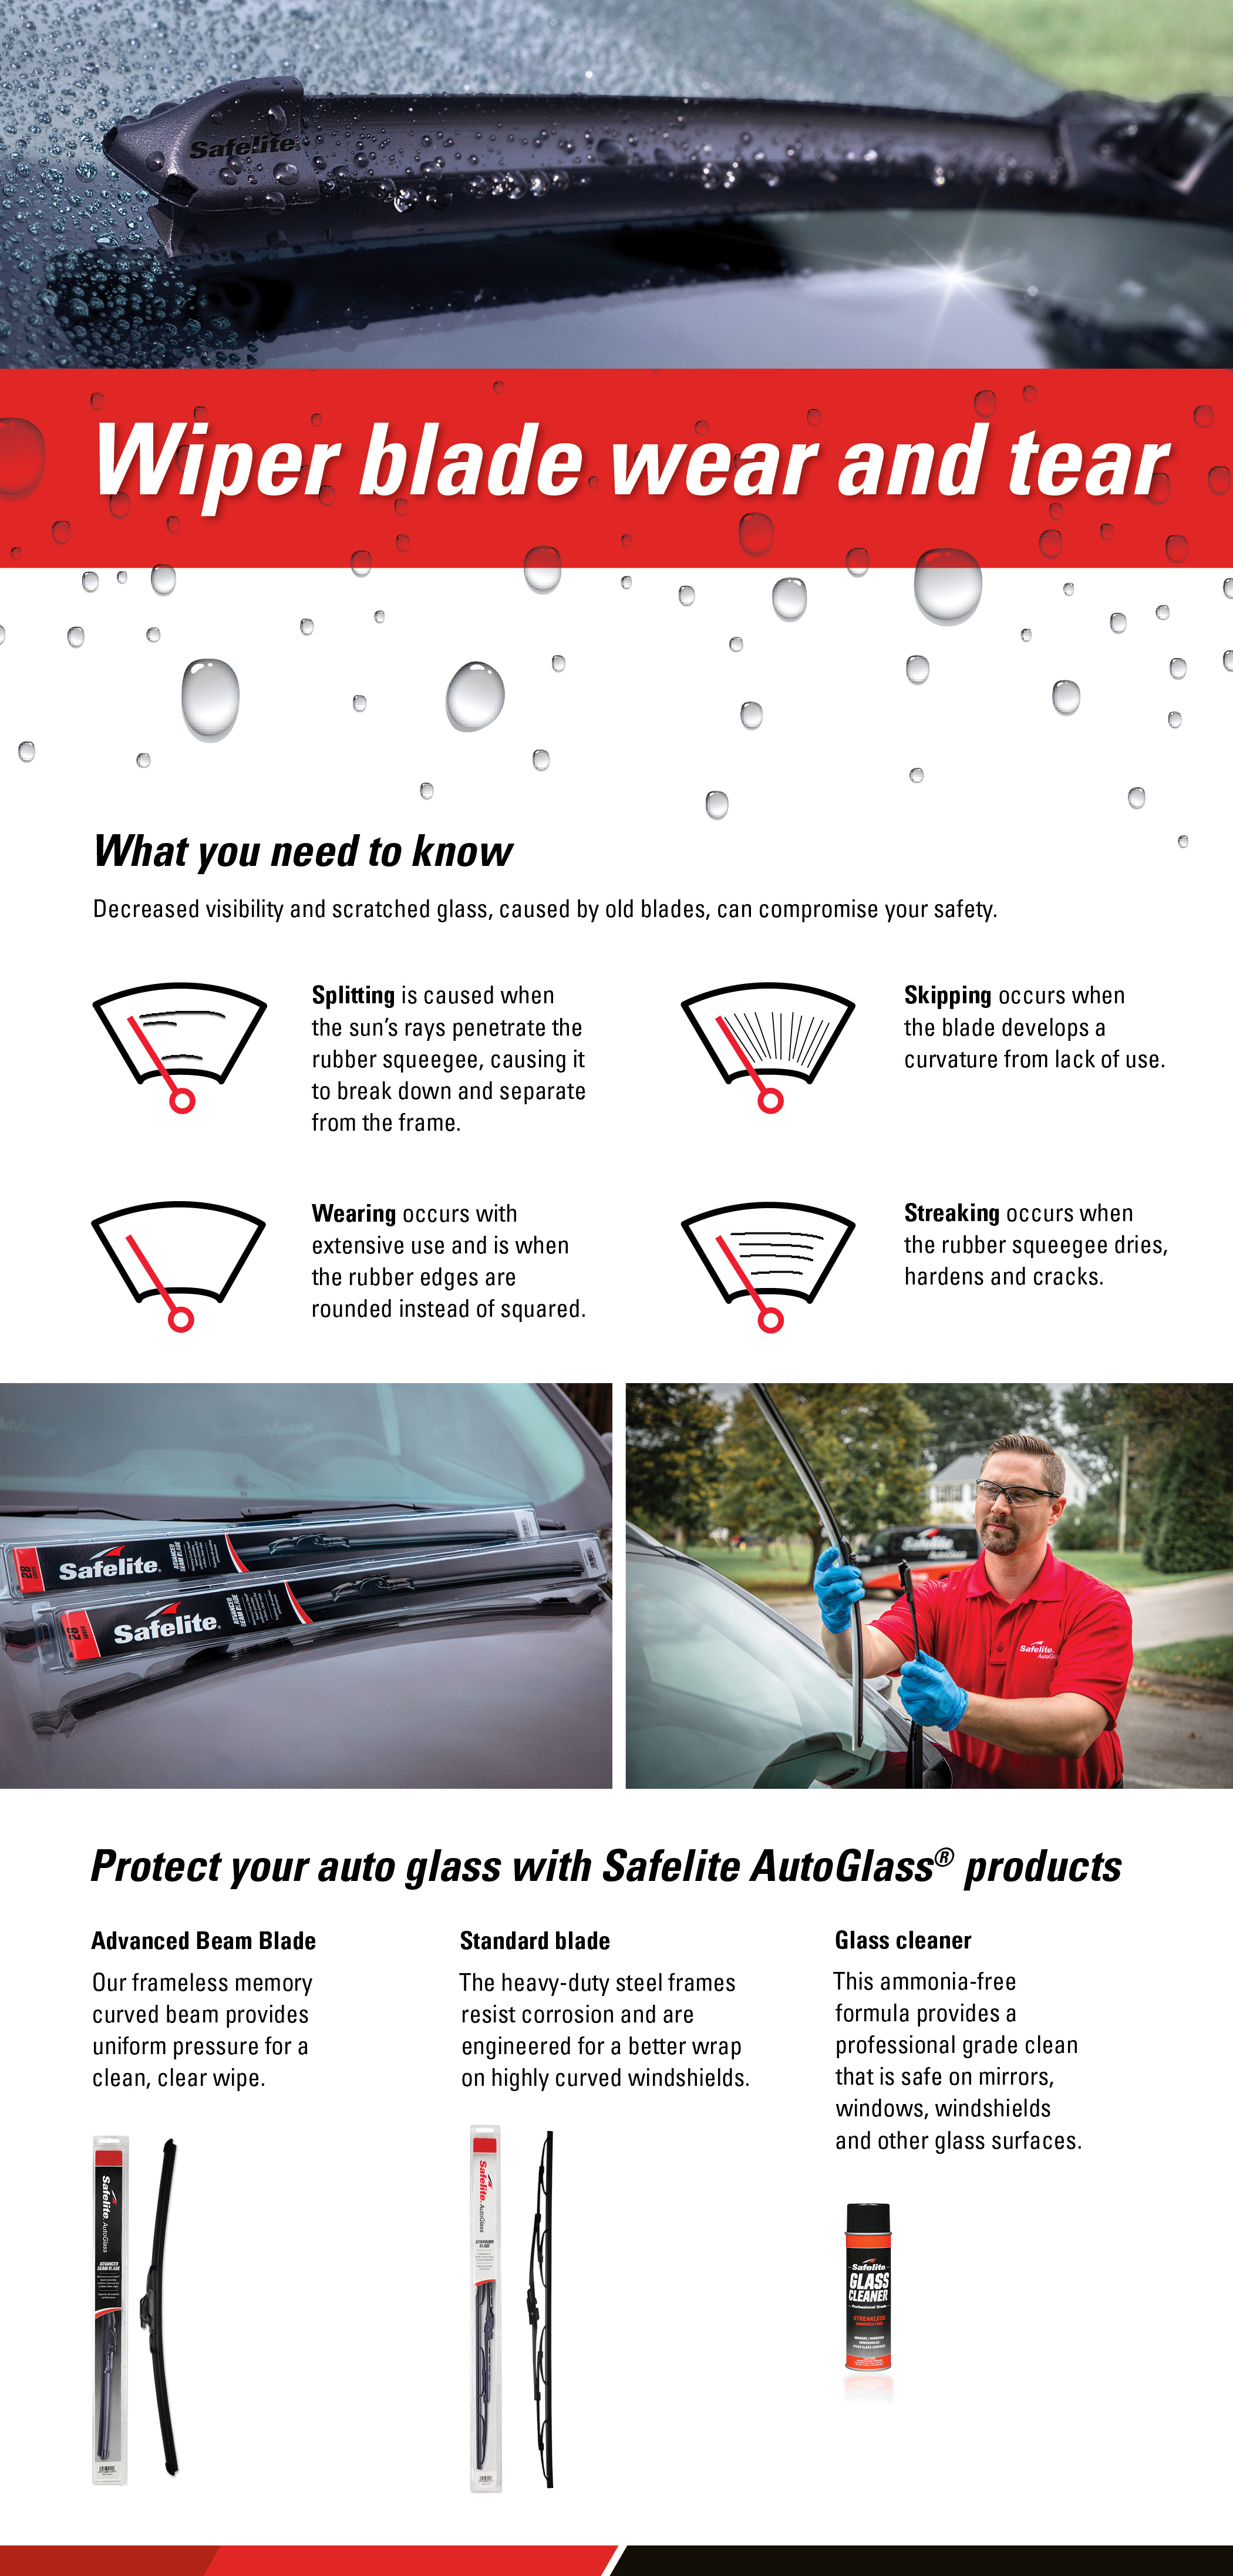 Splitting, skipping, wearing and streaking are all signs of wiper blade wear and tear. When you need new blades, protect your auto glass with Safelite wiper blades and glass cleaner.